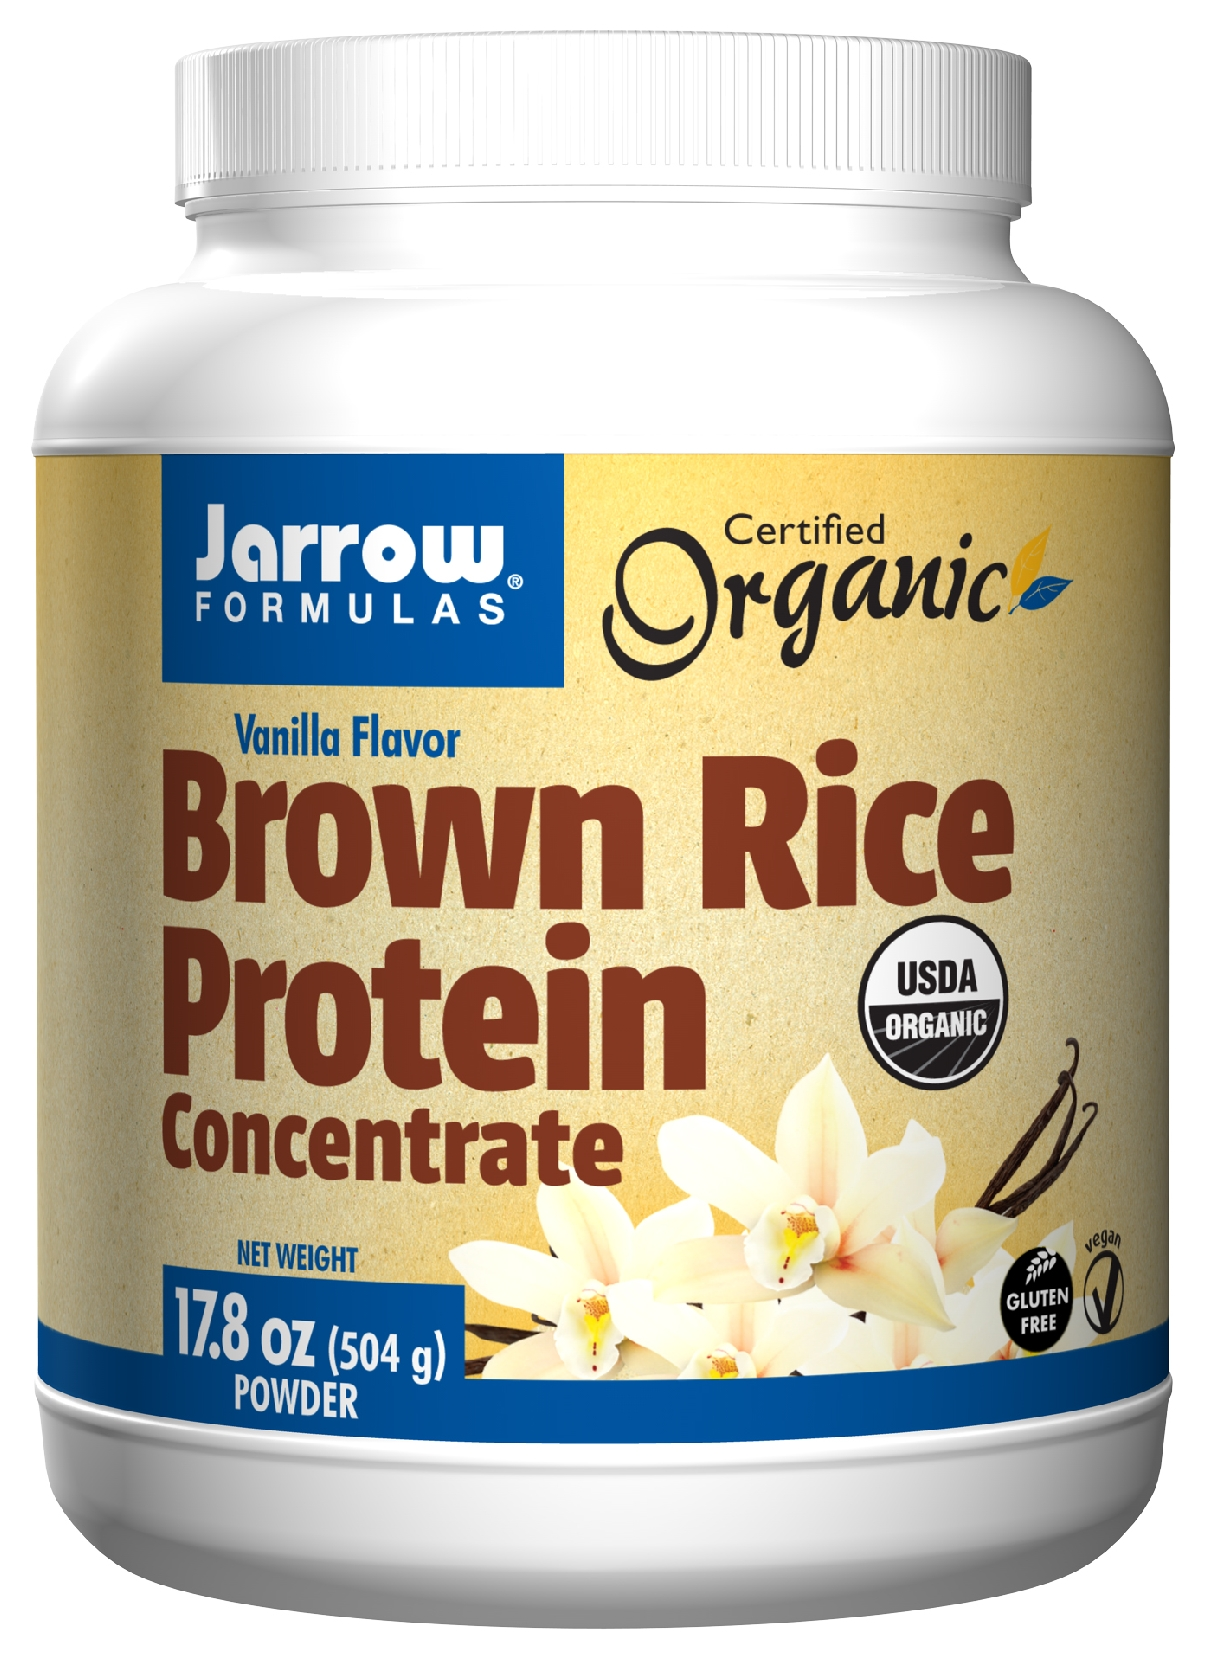 Brown Rice Protein Concentrate Vanilla Flavor 17.8 oz (504 g) by Jarrow Formulas